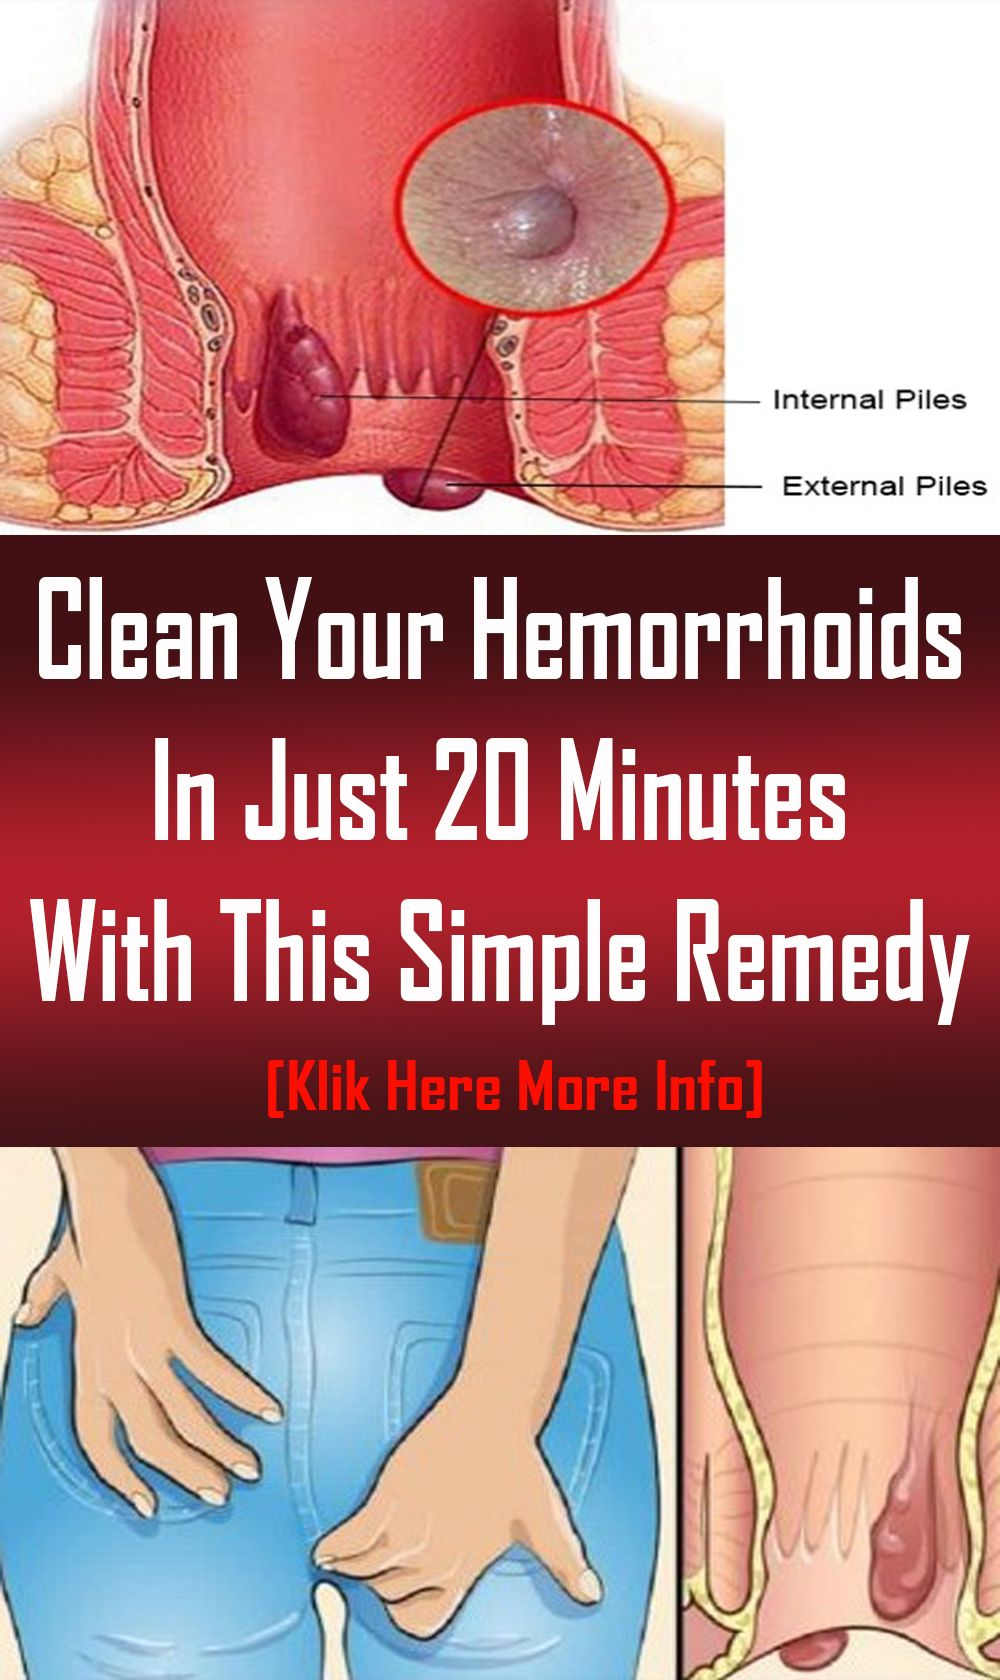 Clean Your Hemorrhoids In Just 20 Minutes With This Simple Remedy Hemorrhoids Remedies Medical Jokes